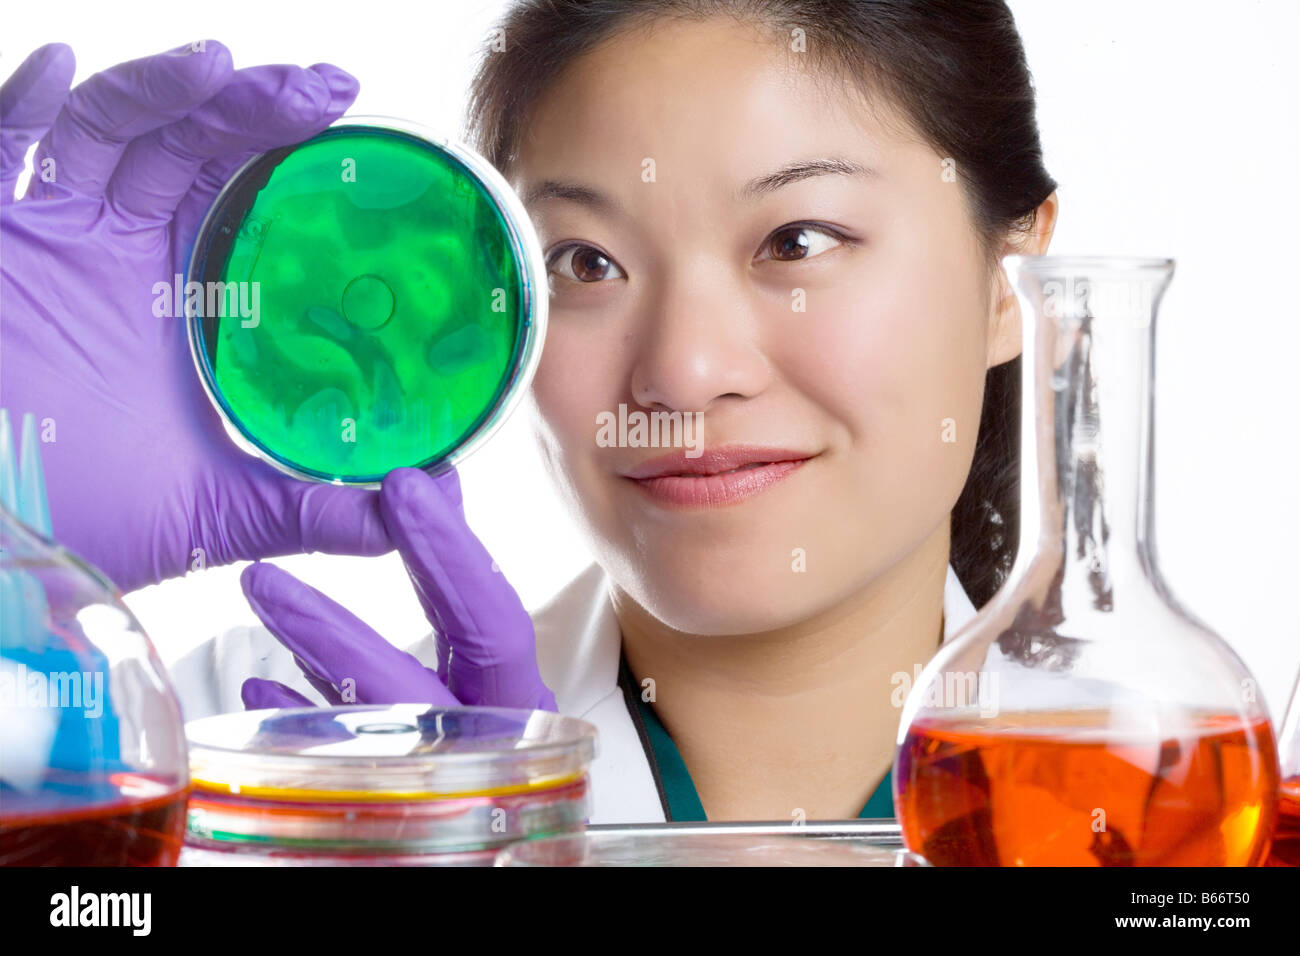 researcher examines petri dish plate. - Stock Image